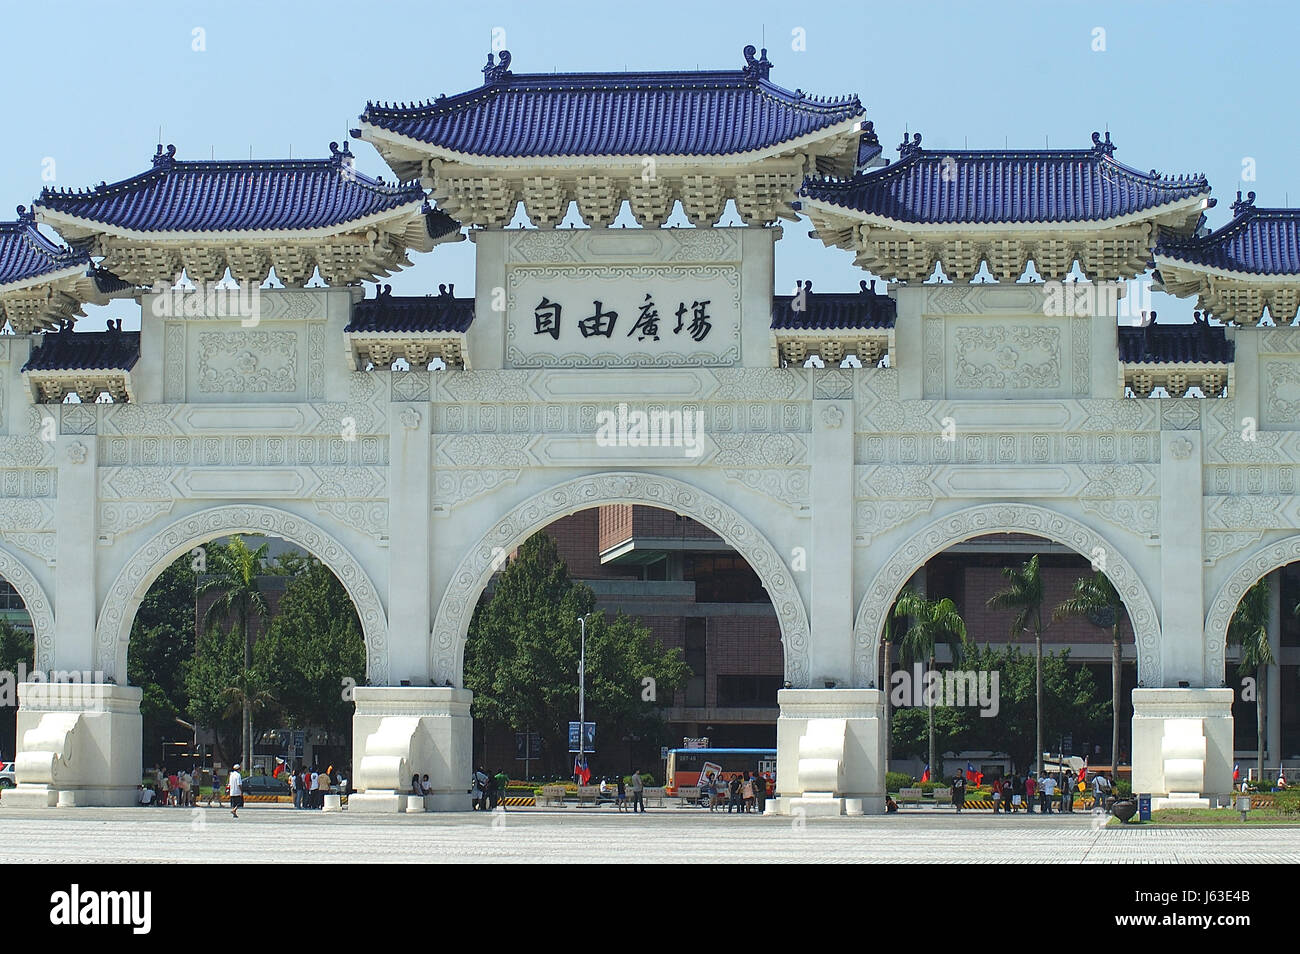 asia goal passage gate archgway gantry taiwan building of historic importance Stock Photo